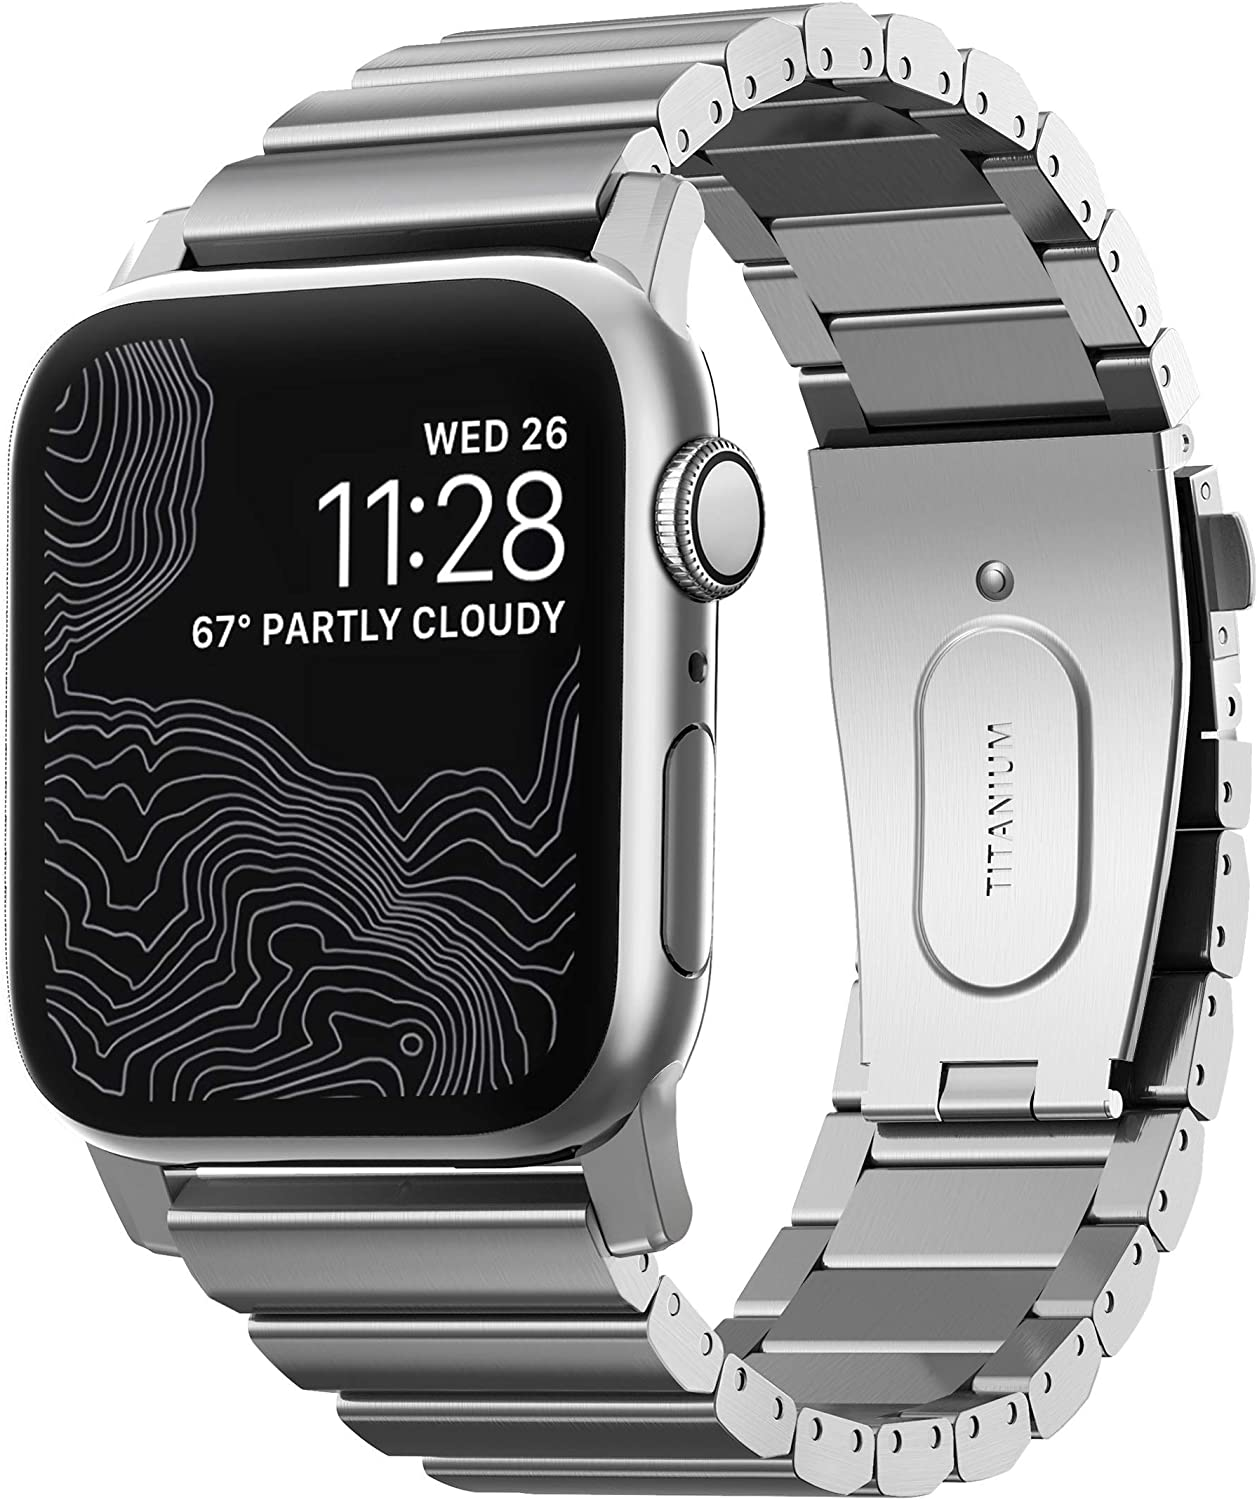 Nomad Titanium Band for Apple Watch 44mm/42mm | Silver Hardware